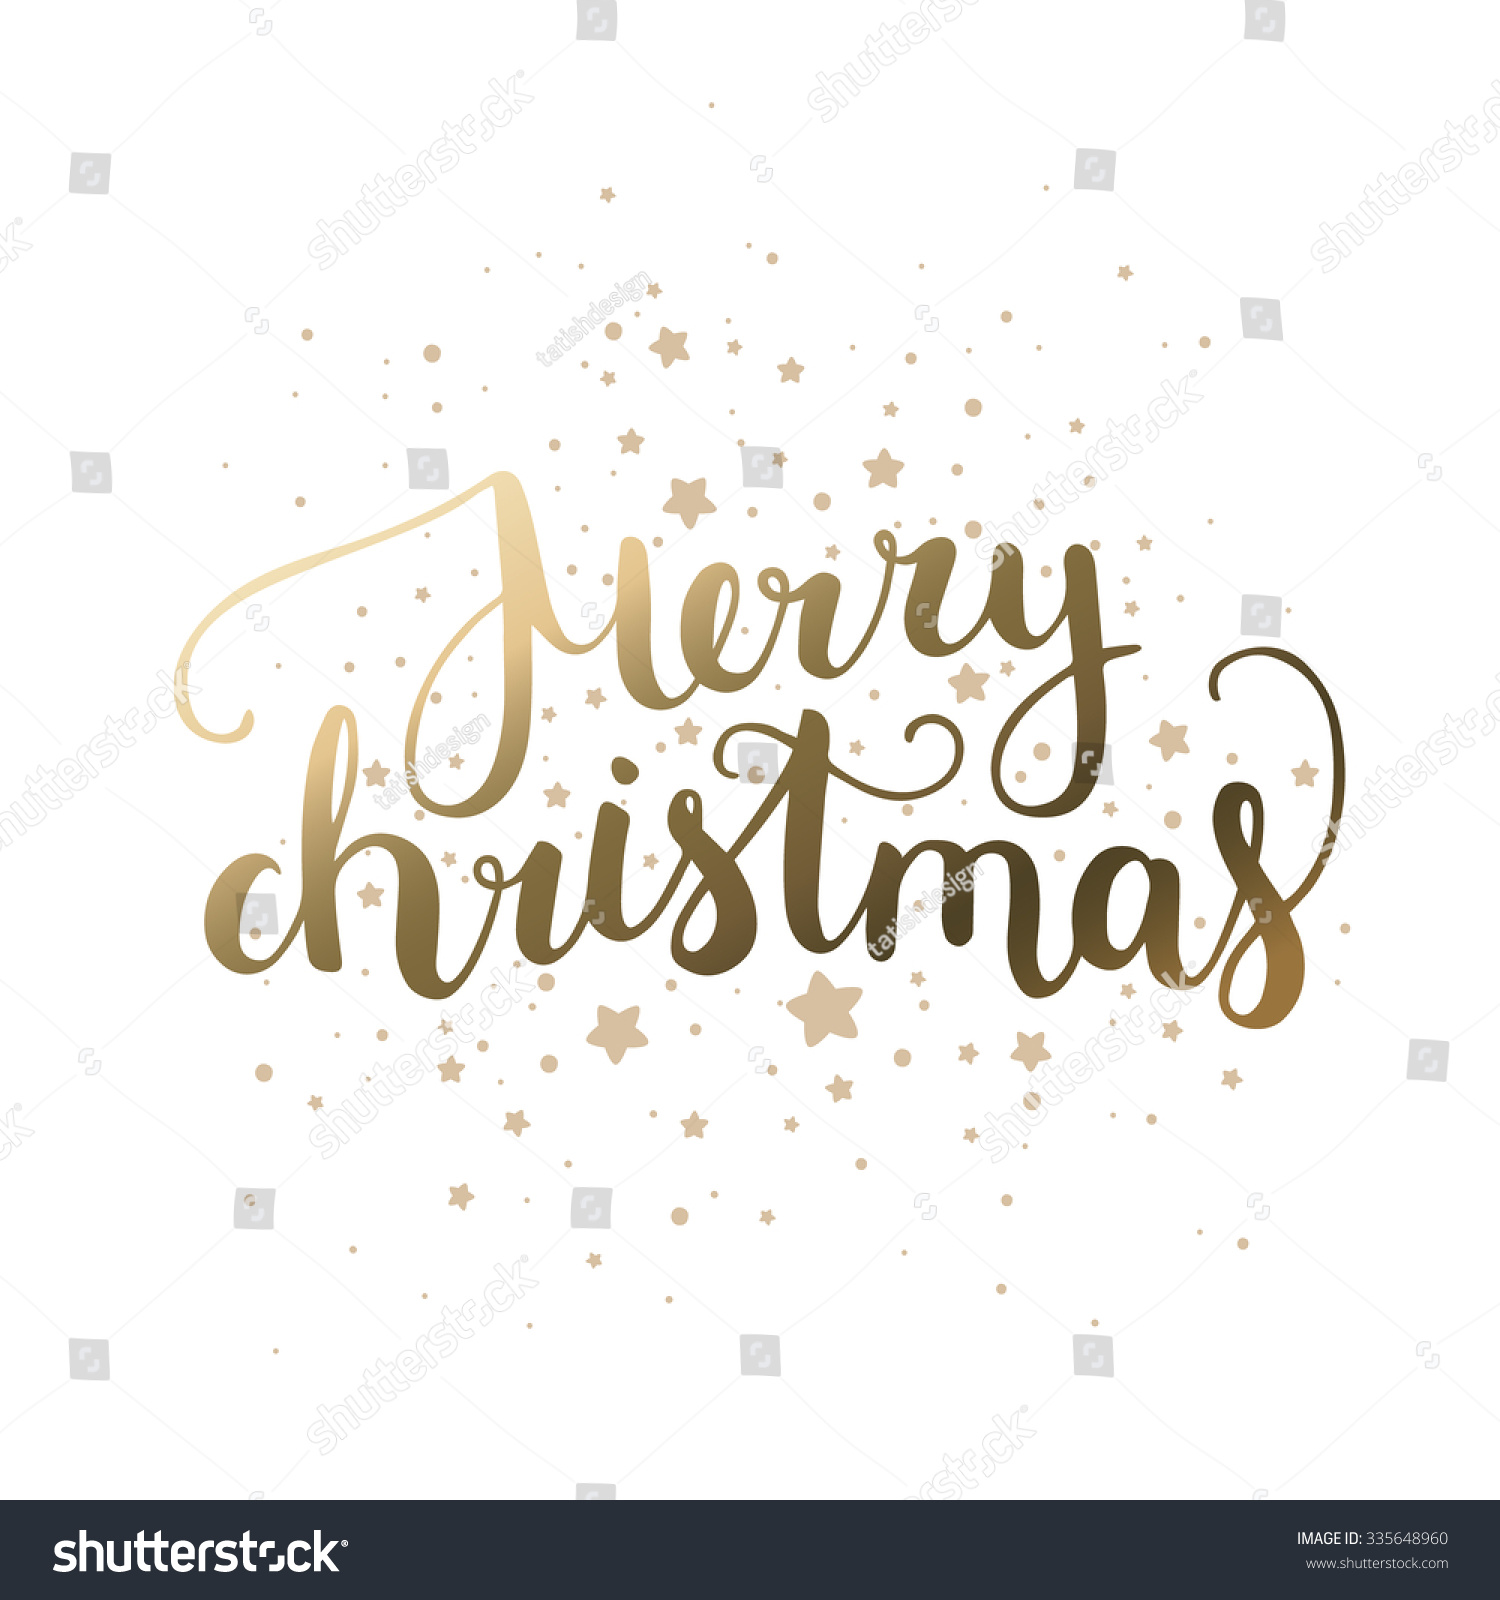 Merry Christmas Card Hand Drawn Lettering Stock Vector (Royalty Free ...